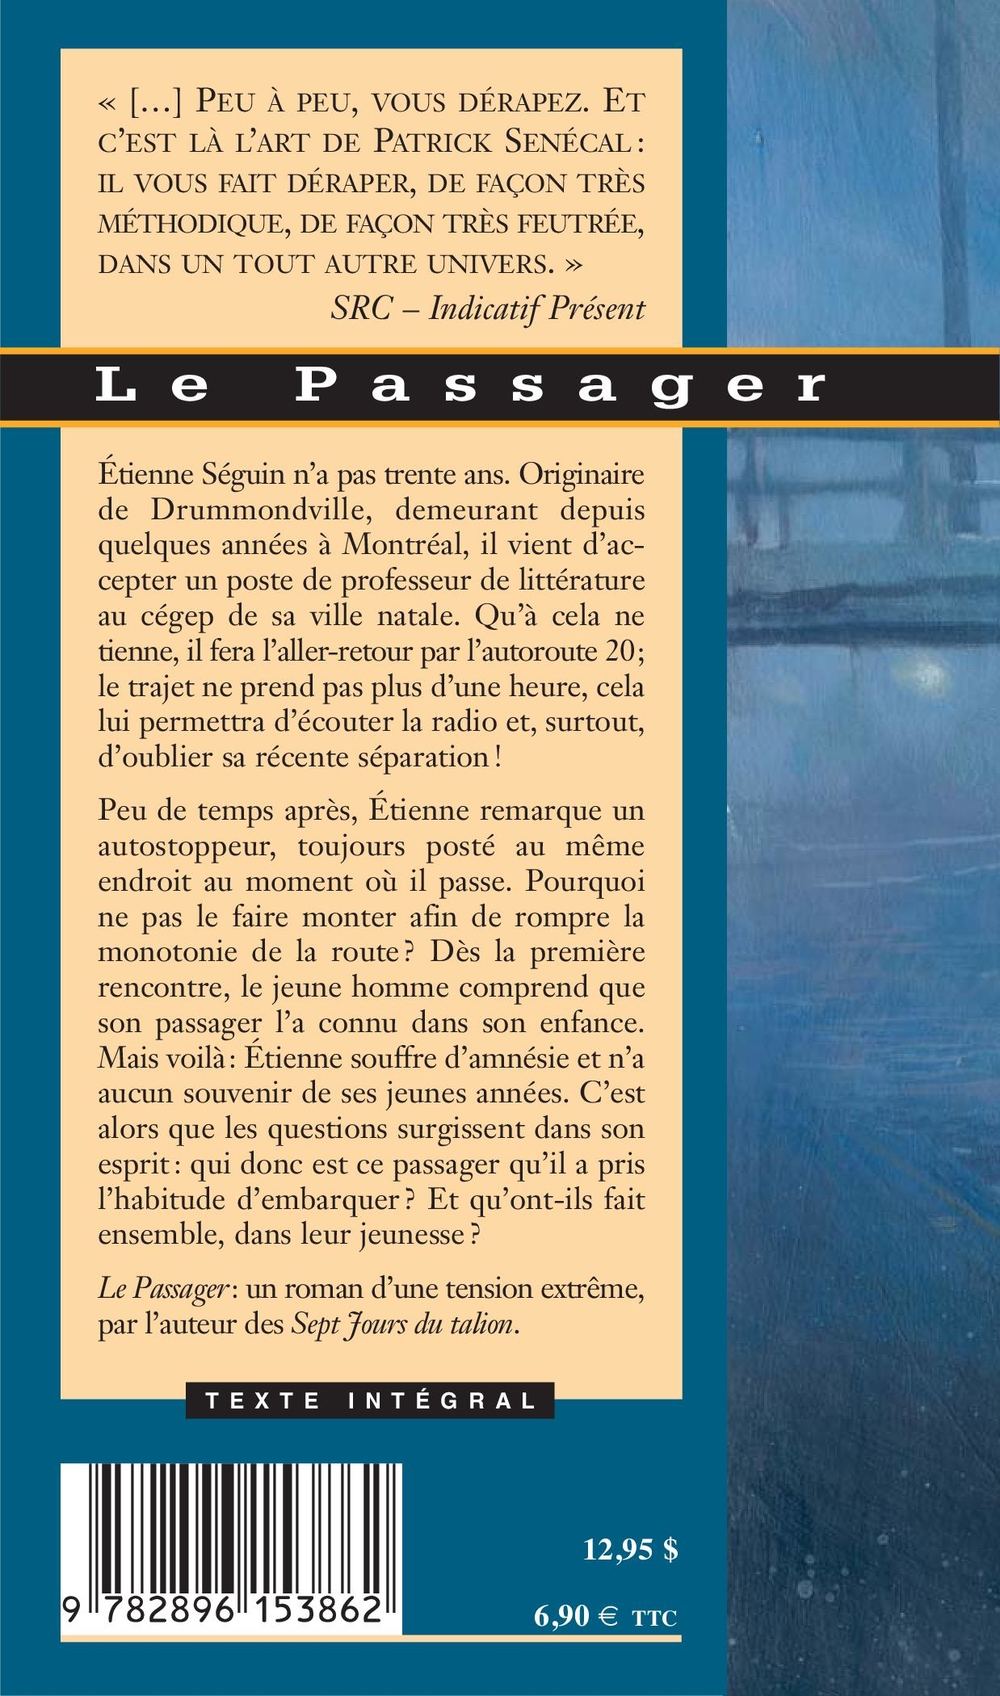 Passager (Le) - Patrick Senécal revers